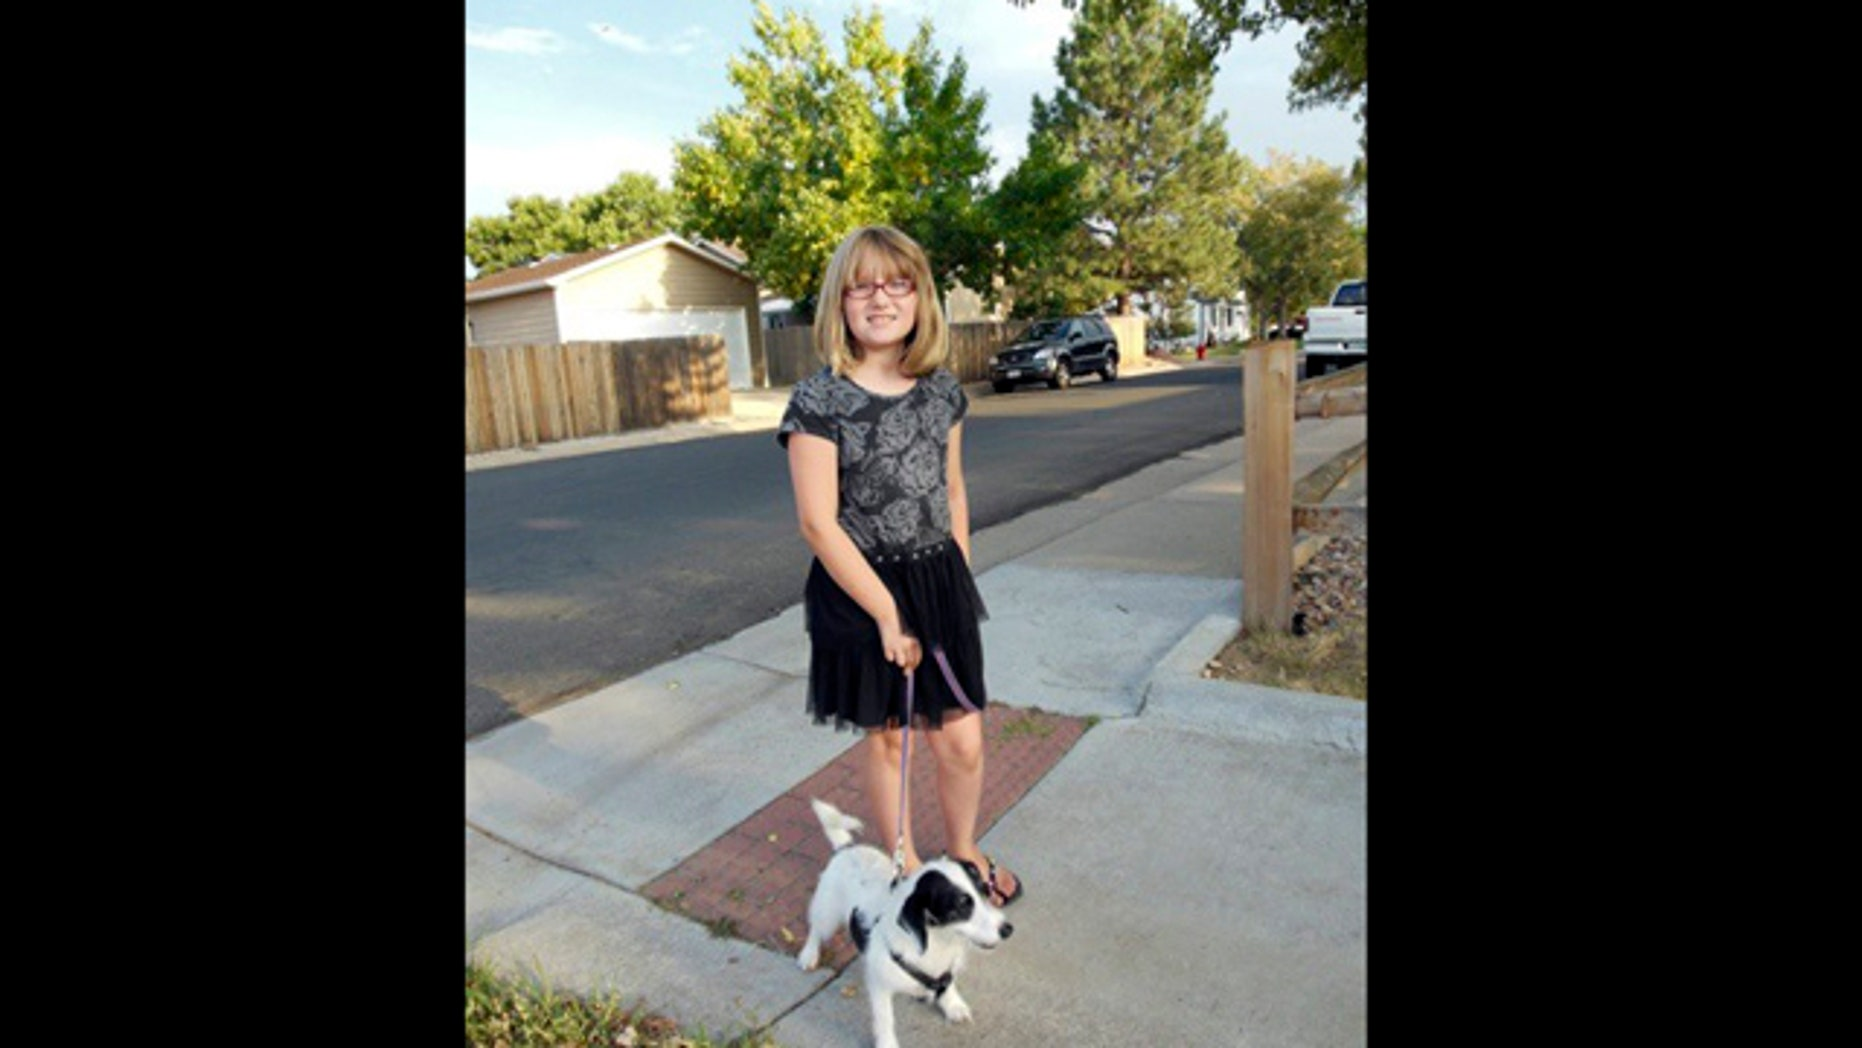 This image provided by the Westminster Colorado Police Department shows Jessica Ridgeway. Authorities looking for the 10-year-old Colorado girl who disappeared days ago after leaving for school are planning to finish scouring open fields and resume searching the fifth-grader's suburban Denver neighborhood on Tuesday, Oct. 9, 2012.